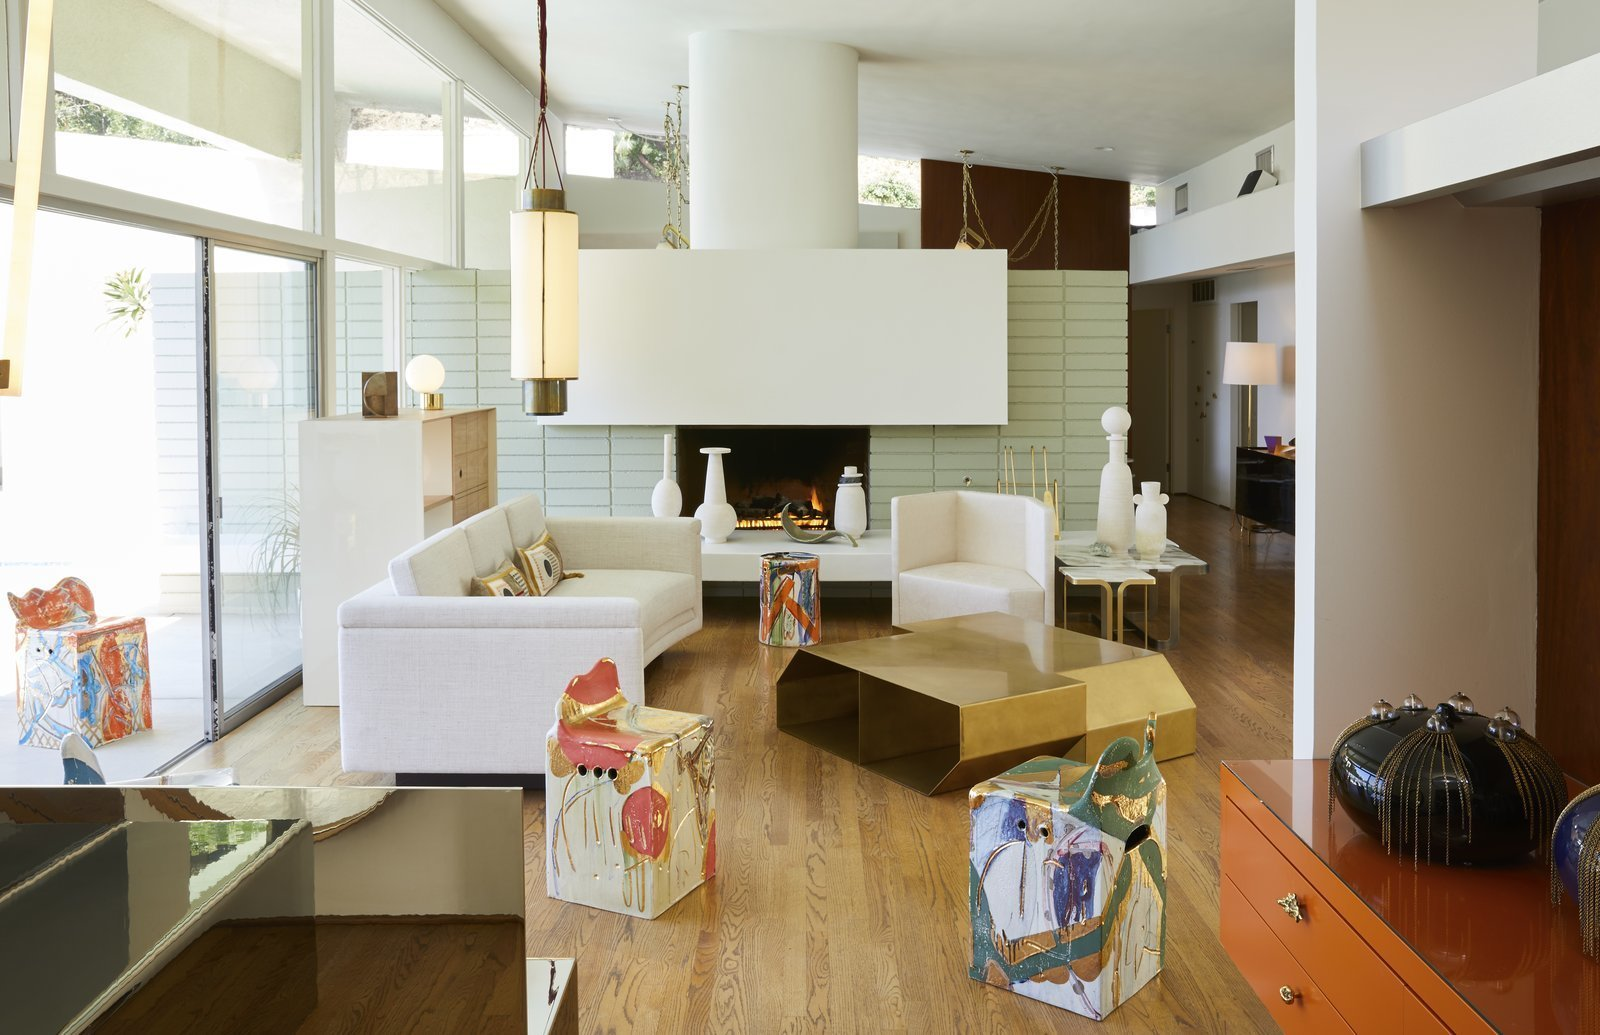 The bright and airy gallery space with a contemporary fireplace, sliding glass doors and a backyard pool serves as the perfect setting for Sanguino's work. Tagged: Living Room, Chair, Sofa, Table, Wood Burning Fireplace, Pendant Lighting, Standard Layout Fireplace, and Medium Hardwood Floor. Casa Perfect Debuts Reinaldo Sanguino's Vibrant Ceramics Inspired by '90s Graffiti Culture - Photo 2 of 10